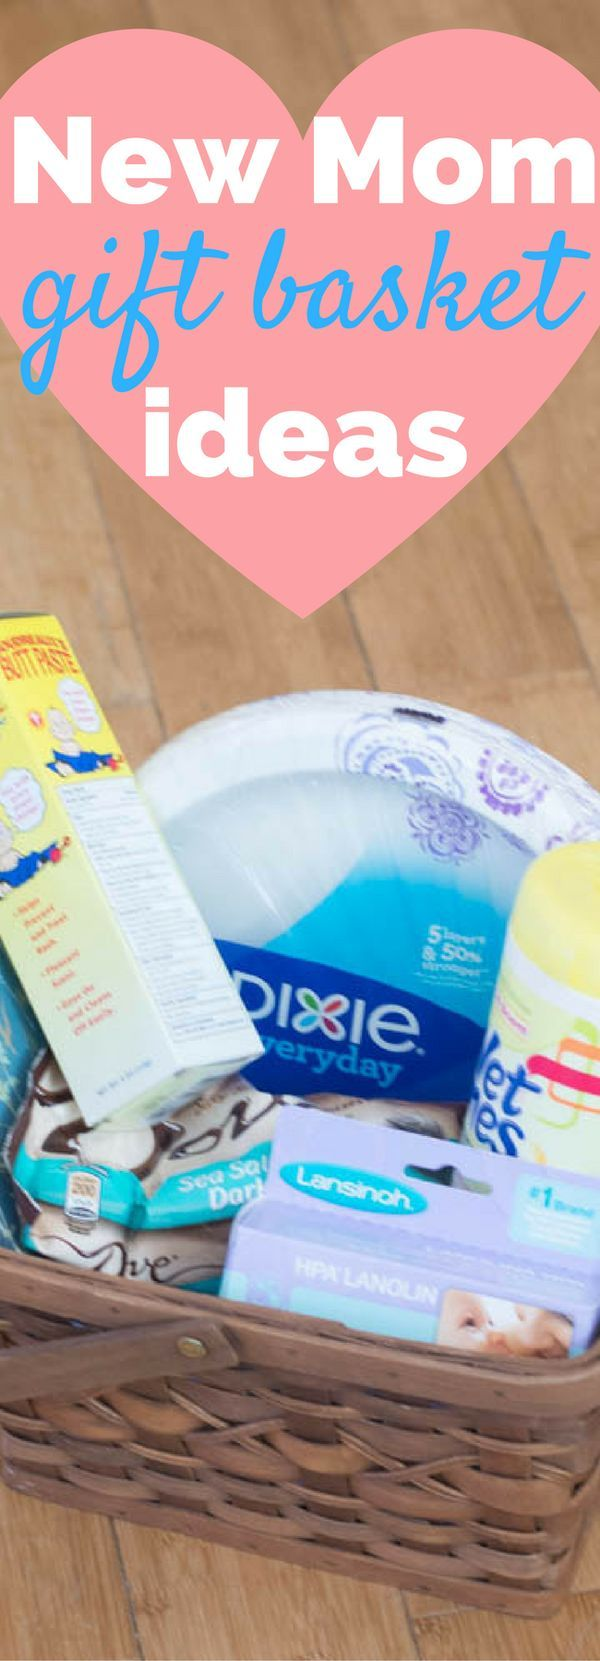 Do you know someone who recently became a mother or father? Use these gift basket ideas to make their life easier for those first weeks as a parent!